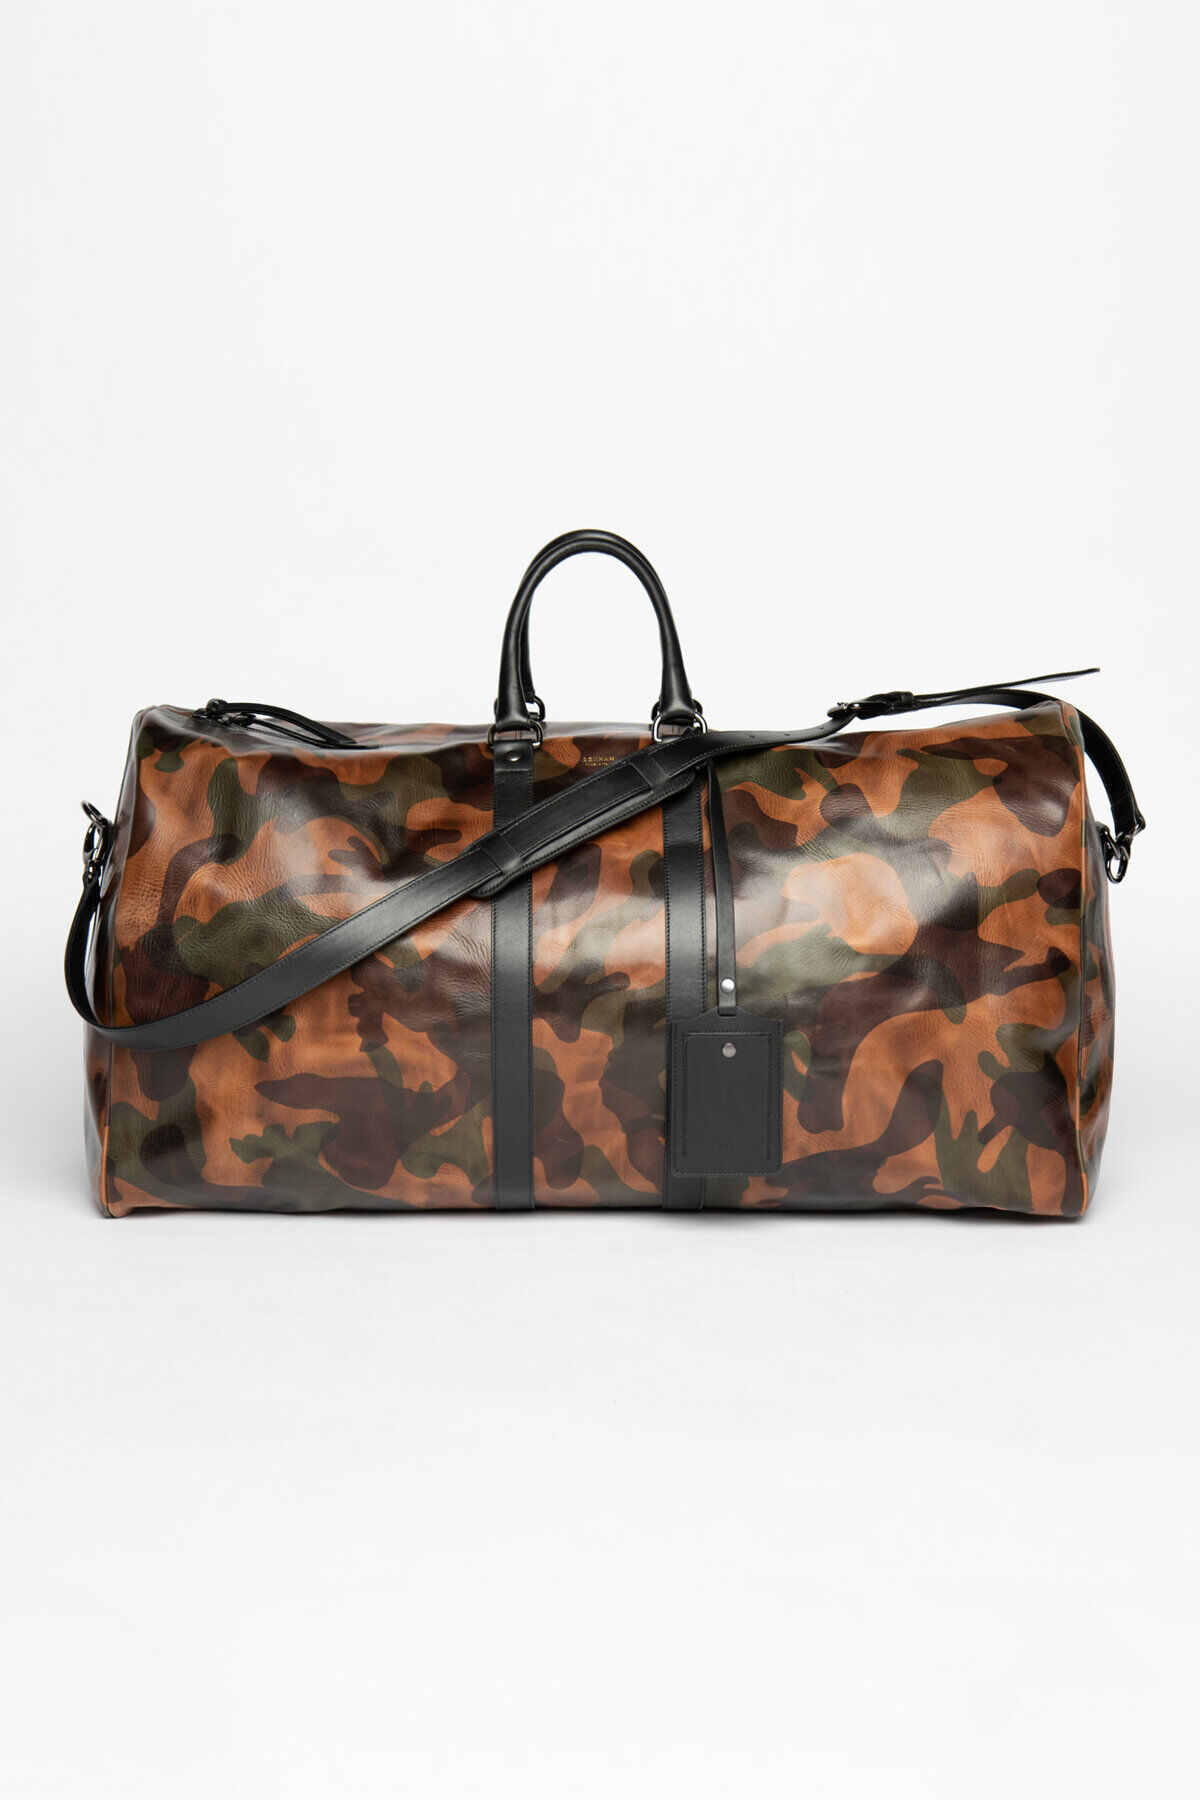 WEEKEND BAG Camo Laser Print Leather